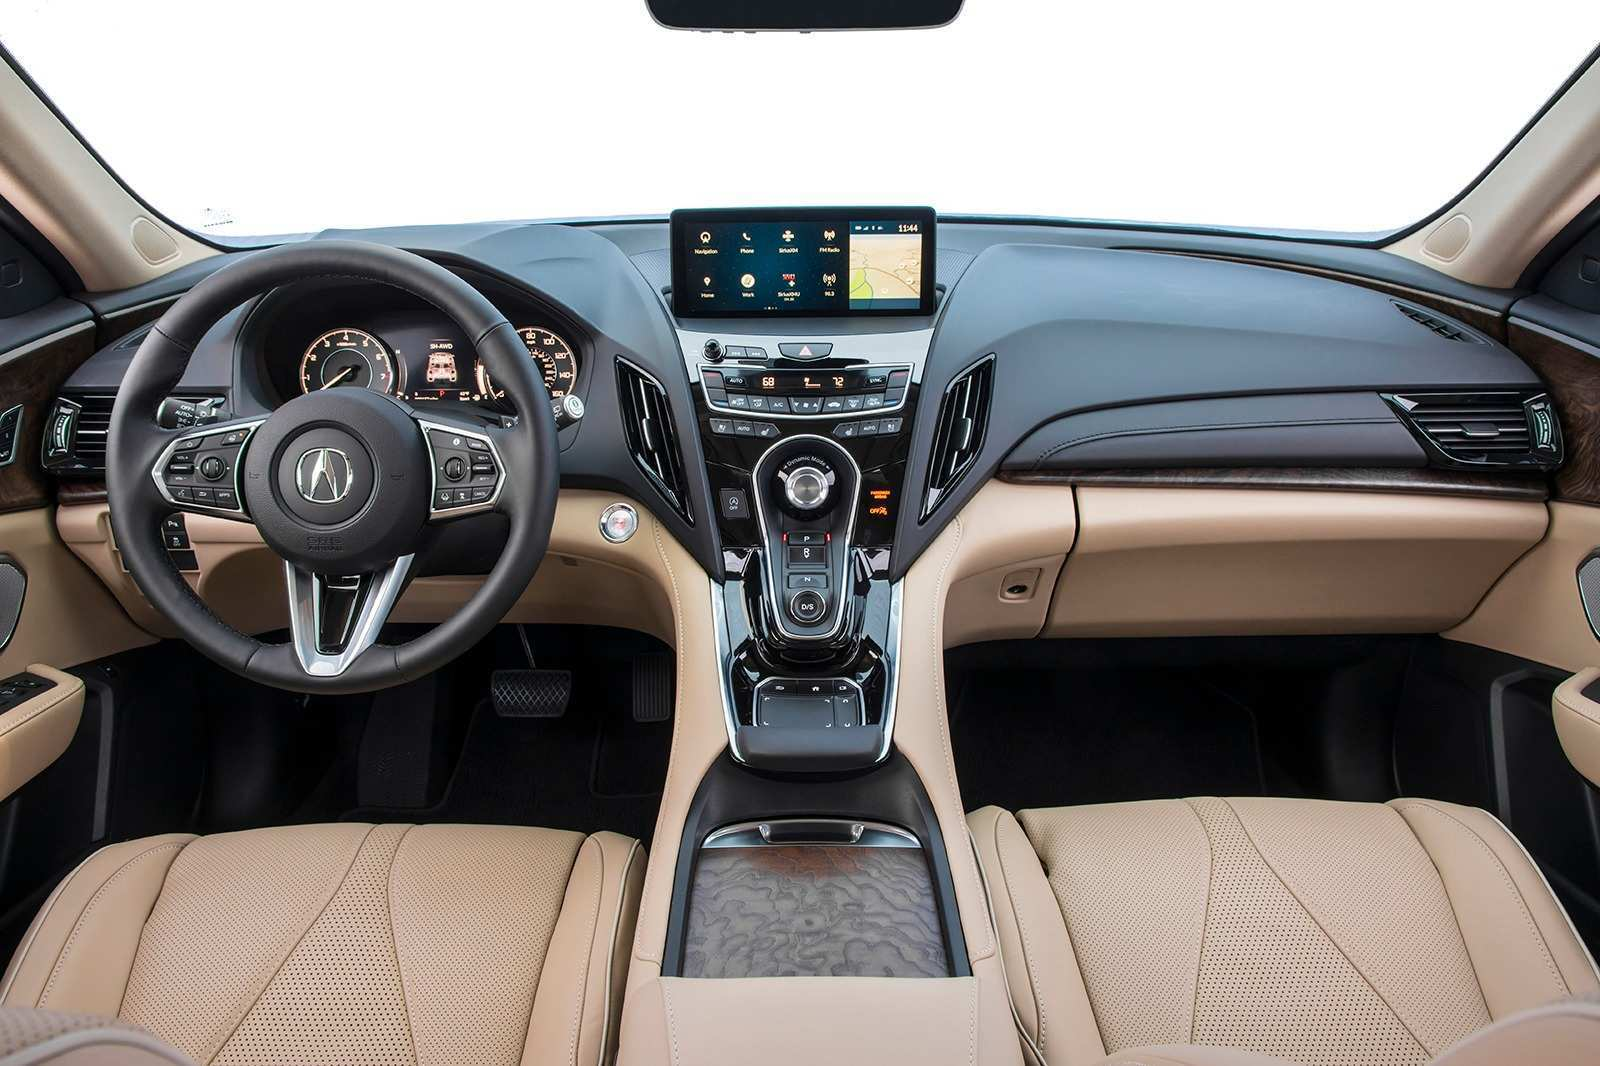 69 The New Rdx Acura 2019 Price Specs Specs and Review with New Rdx Acura 2019 Price Specs